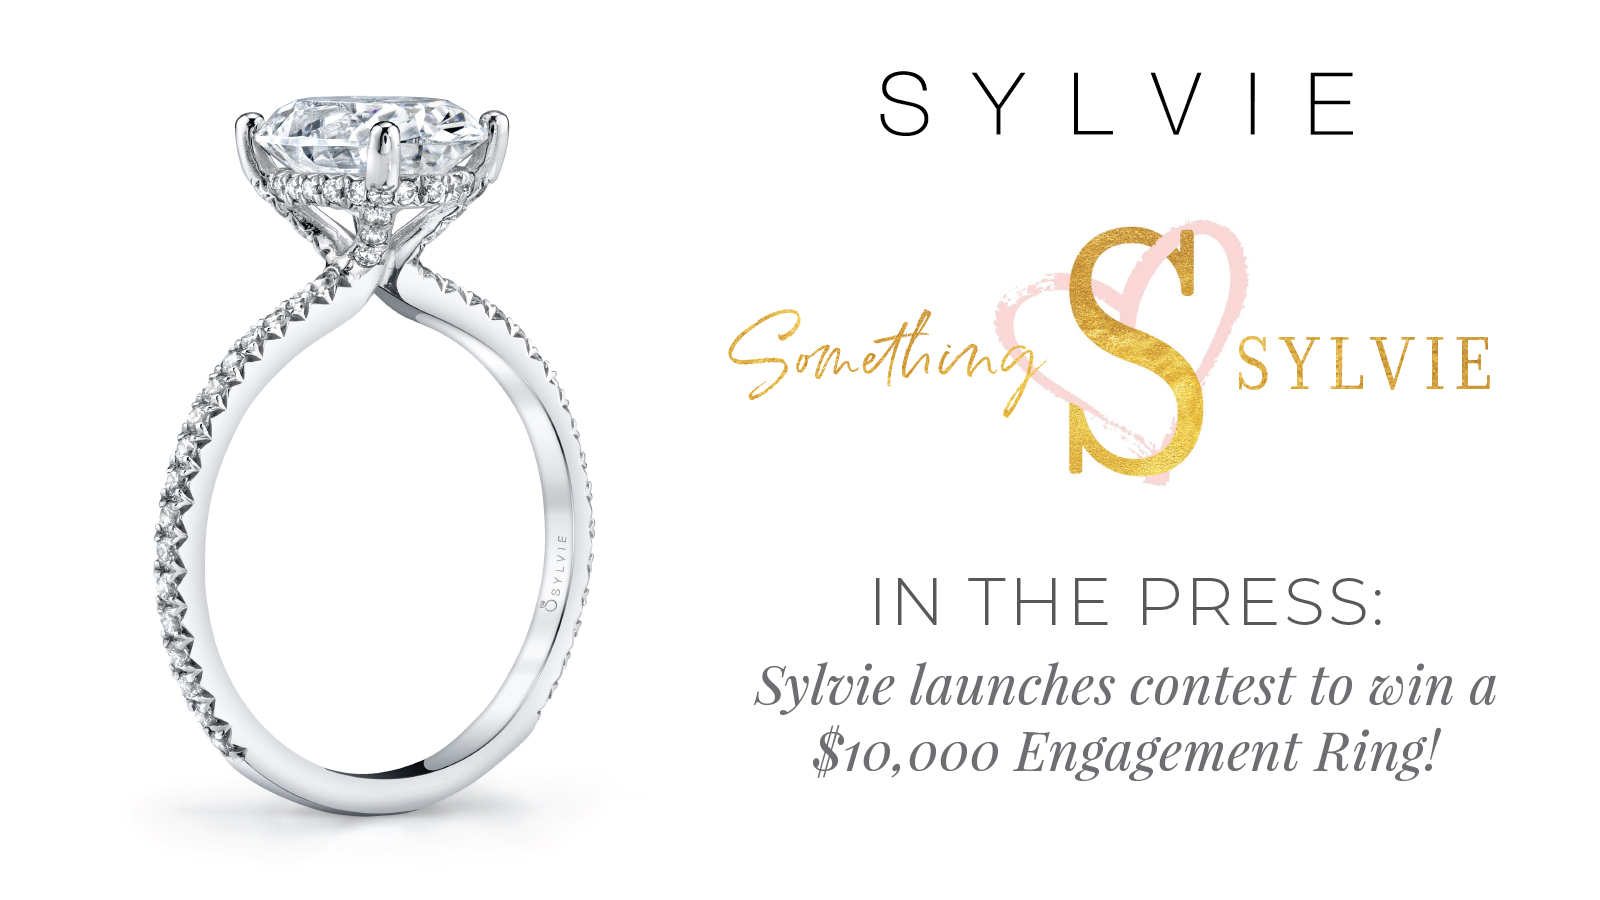 Sylvie Collection - Something Sylvie Sweepstakes</a><br> by <a href='/profile/Bling-King/'>Bling King</a>